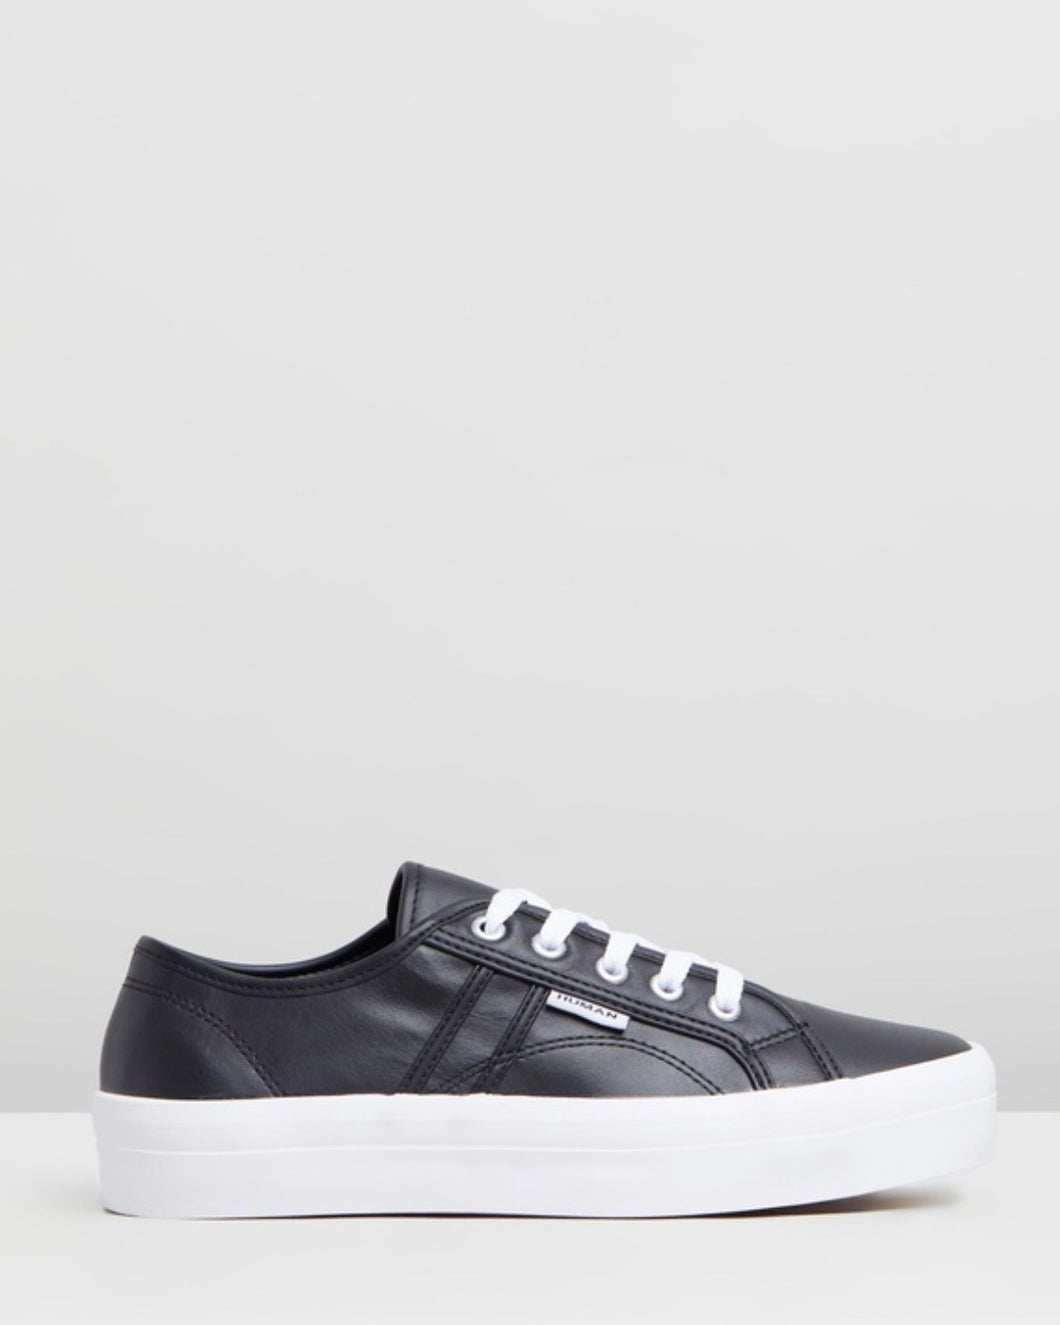 Cass Leather Sneakers - Black Leather - Basic State Australia